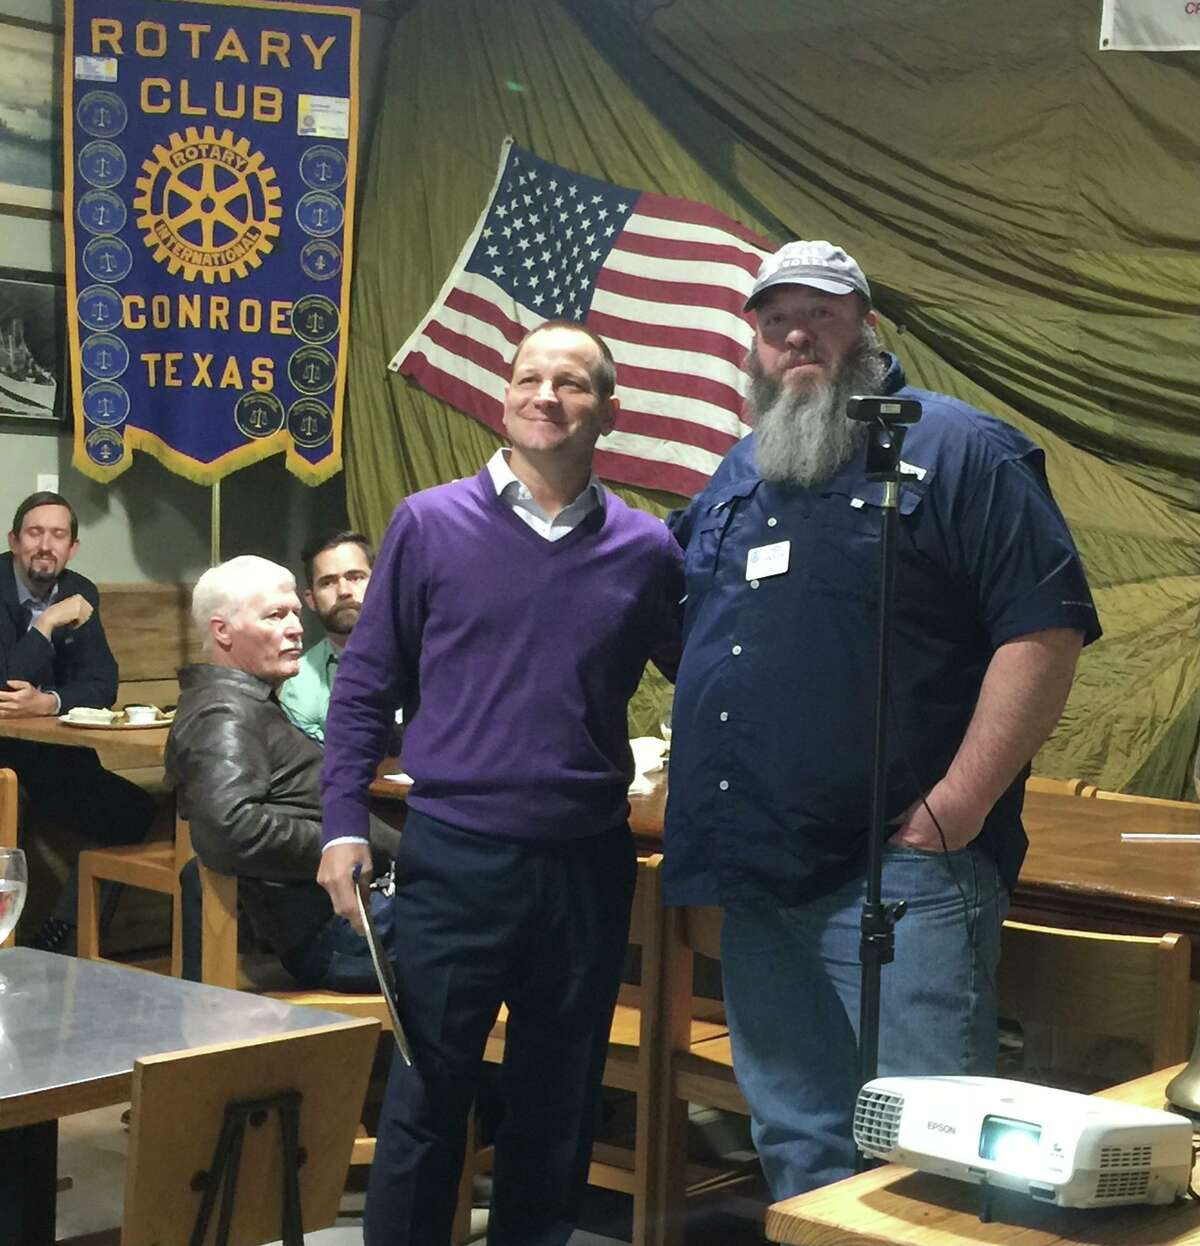 Pictured are Conroe Mayor Jody Czajkoski, left, and Rotary Club of Conroe President Chris Sadler at Wednesday RCC meeting at Honor Cafe.